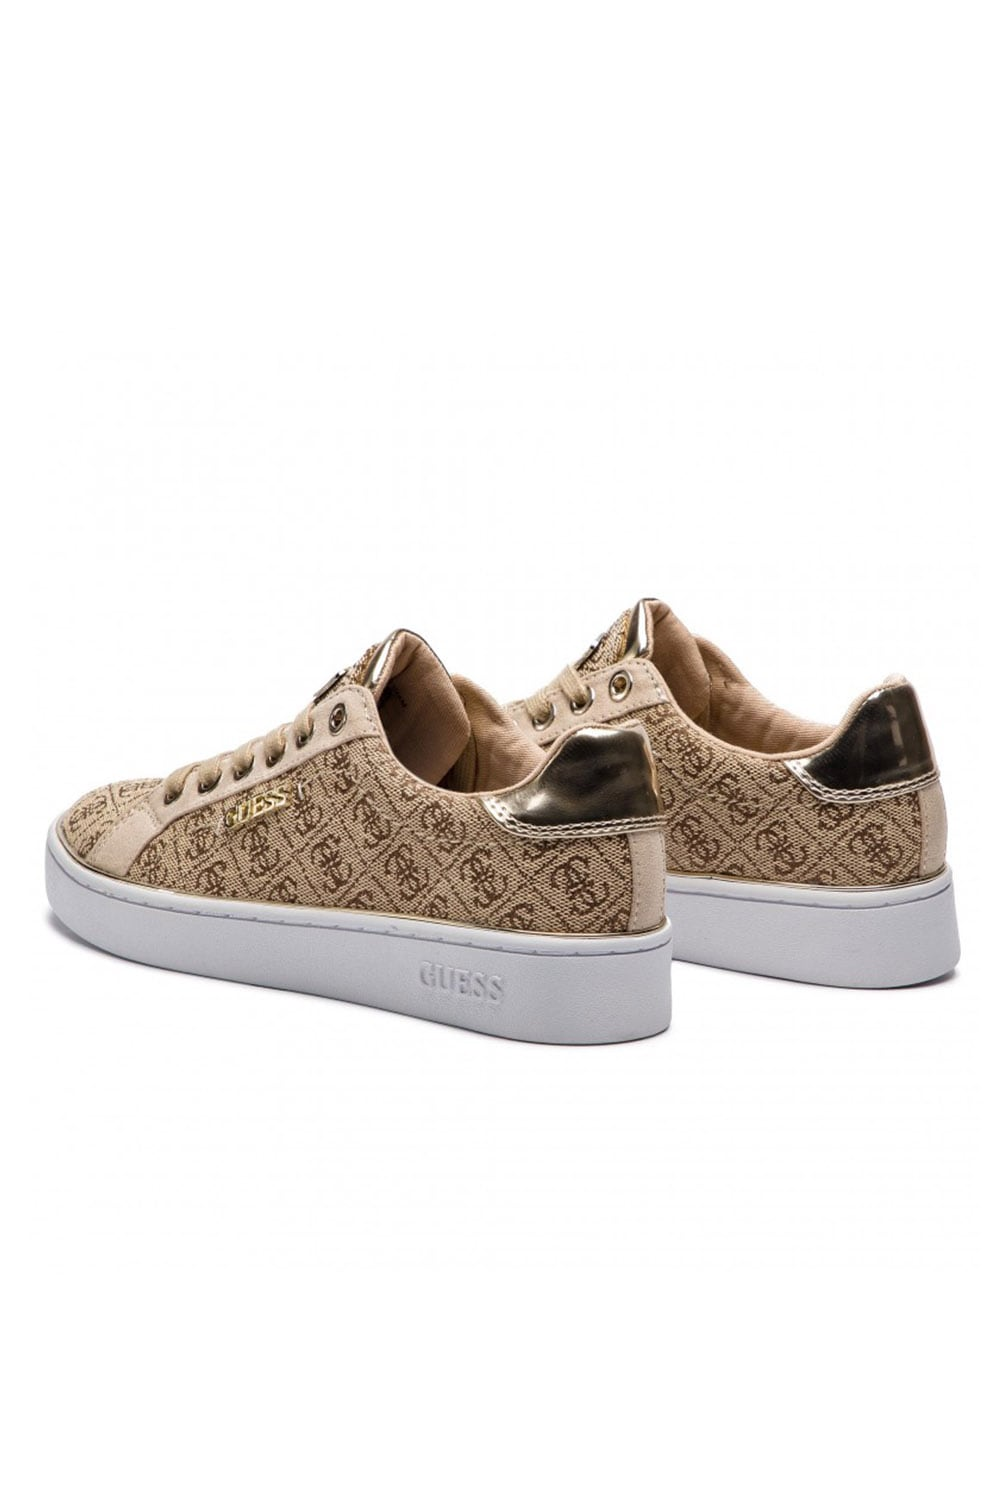 0f37ac97bd0 SQUARE | Sneakers Guess 018306